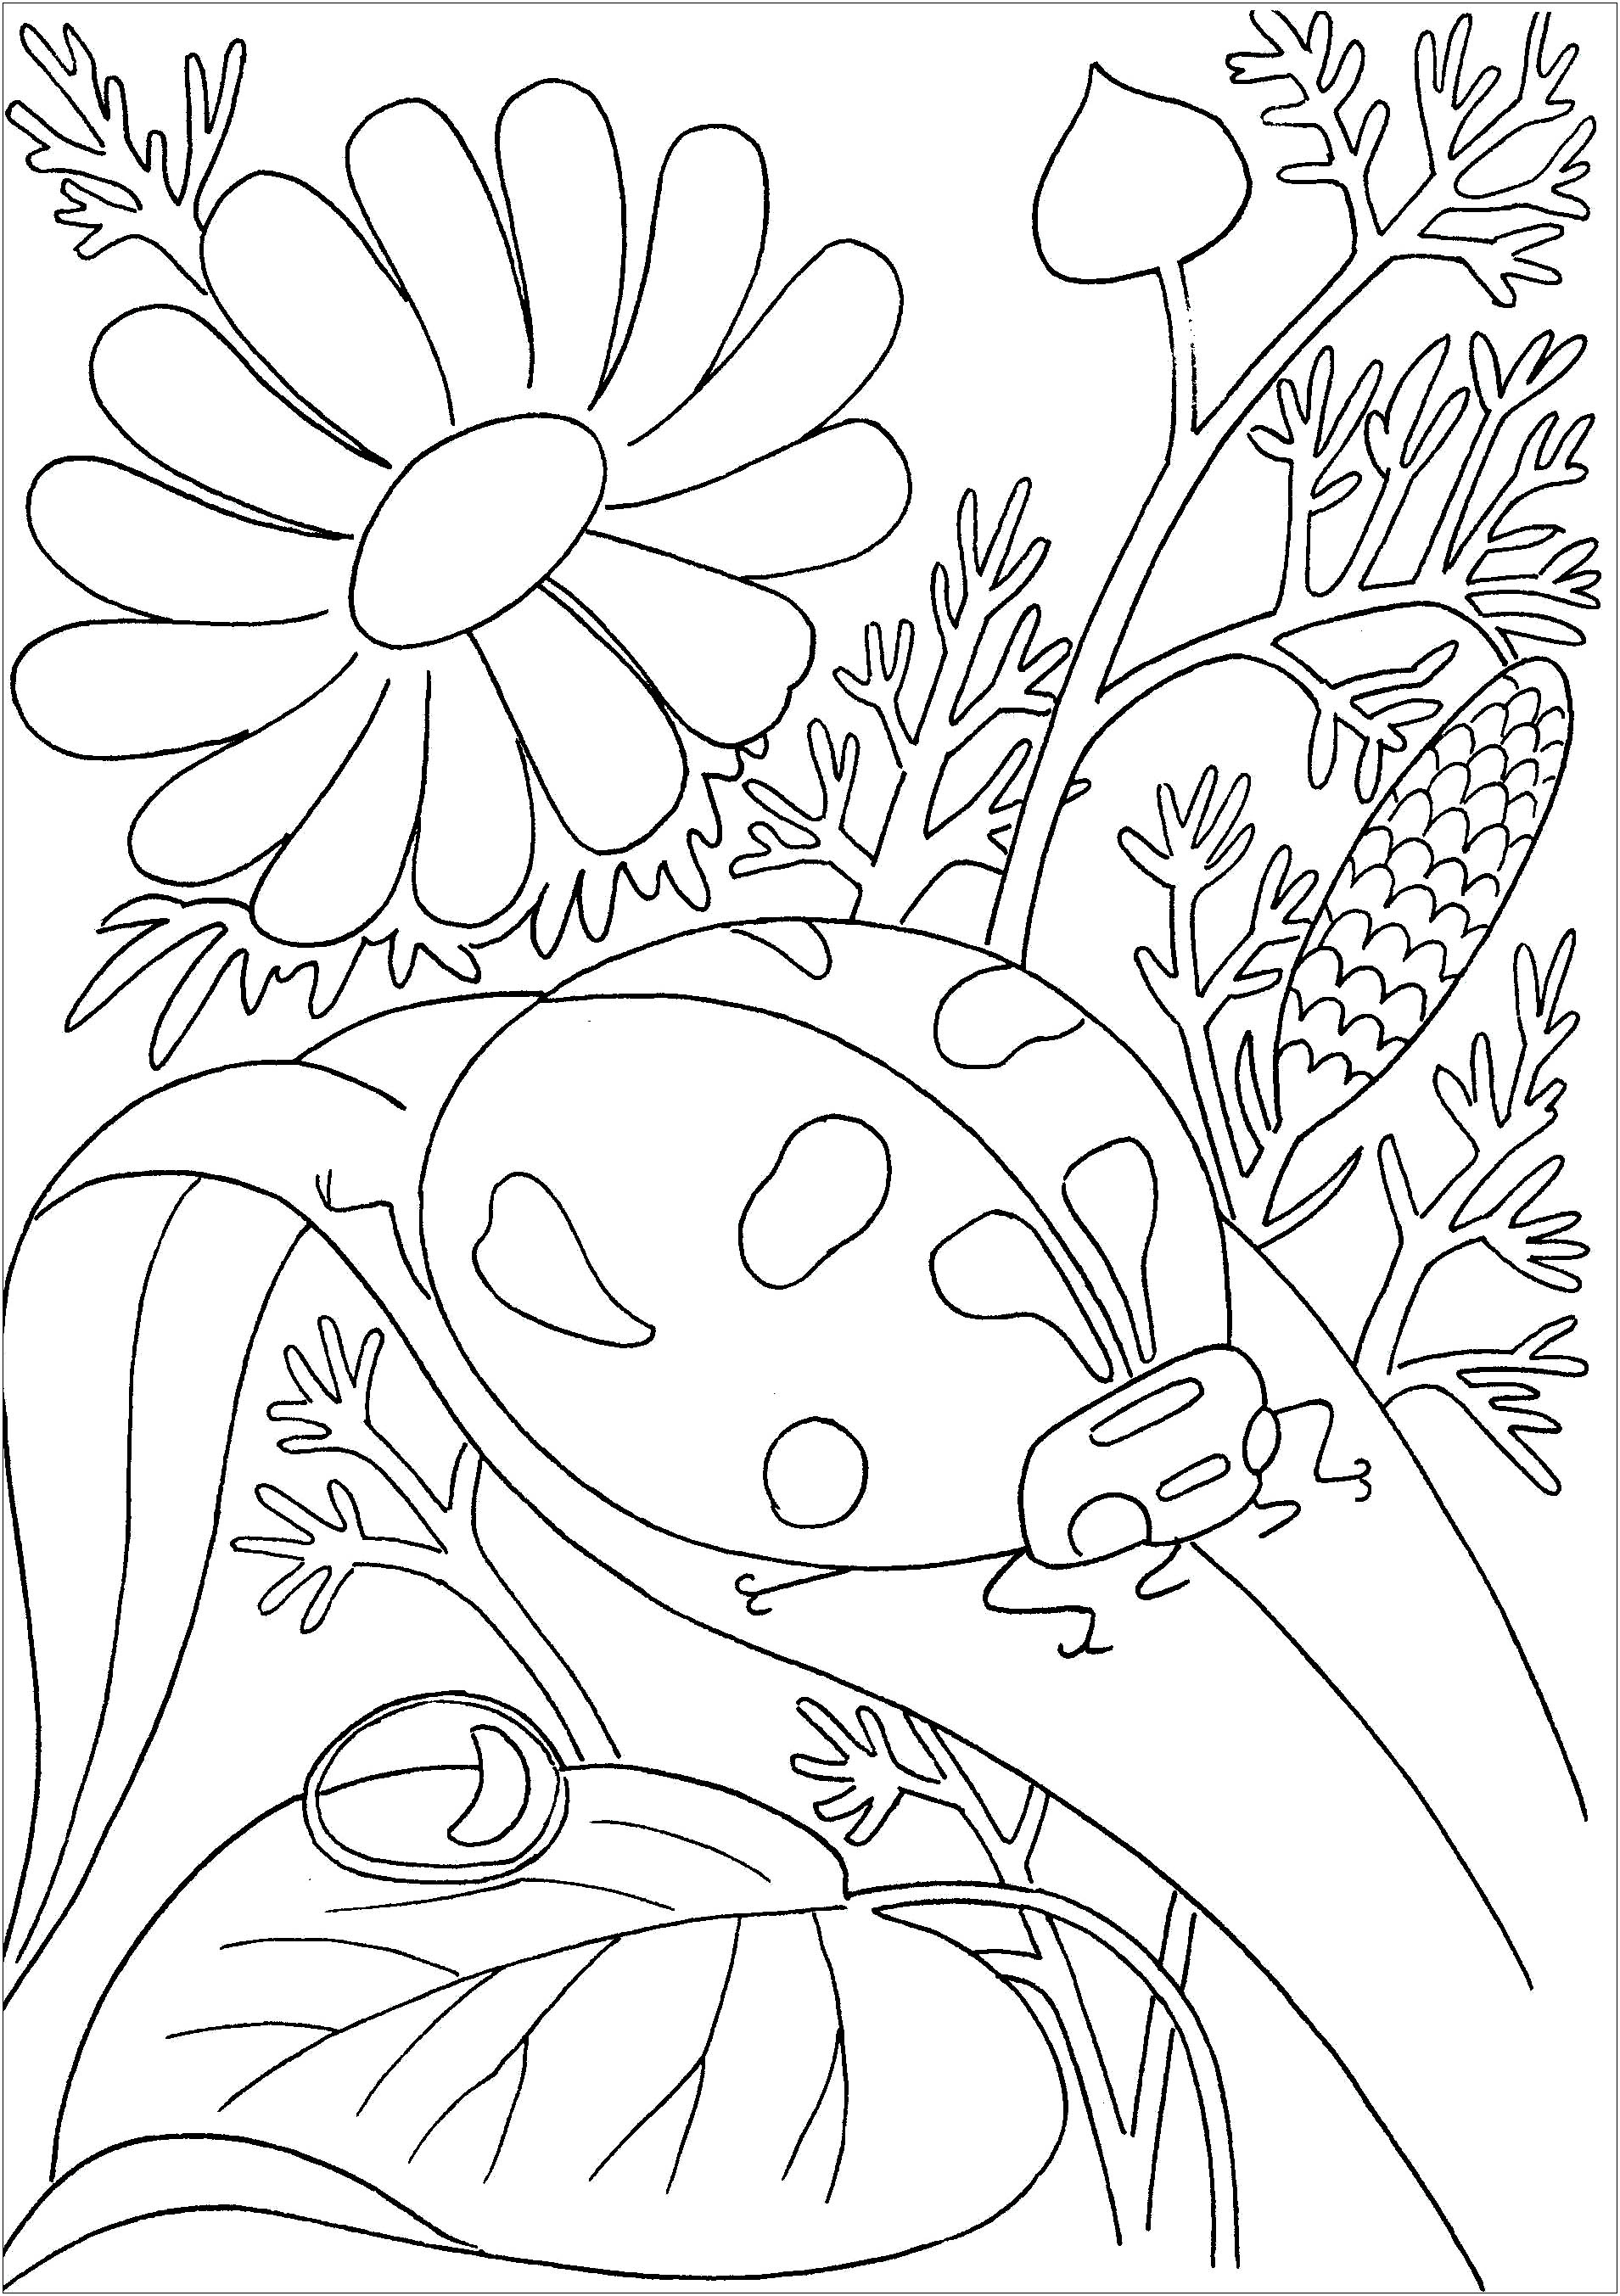 printable bug coloring pages coloring pages animal place part 2 pages coloring bug printable